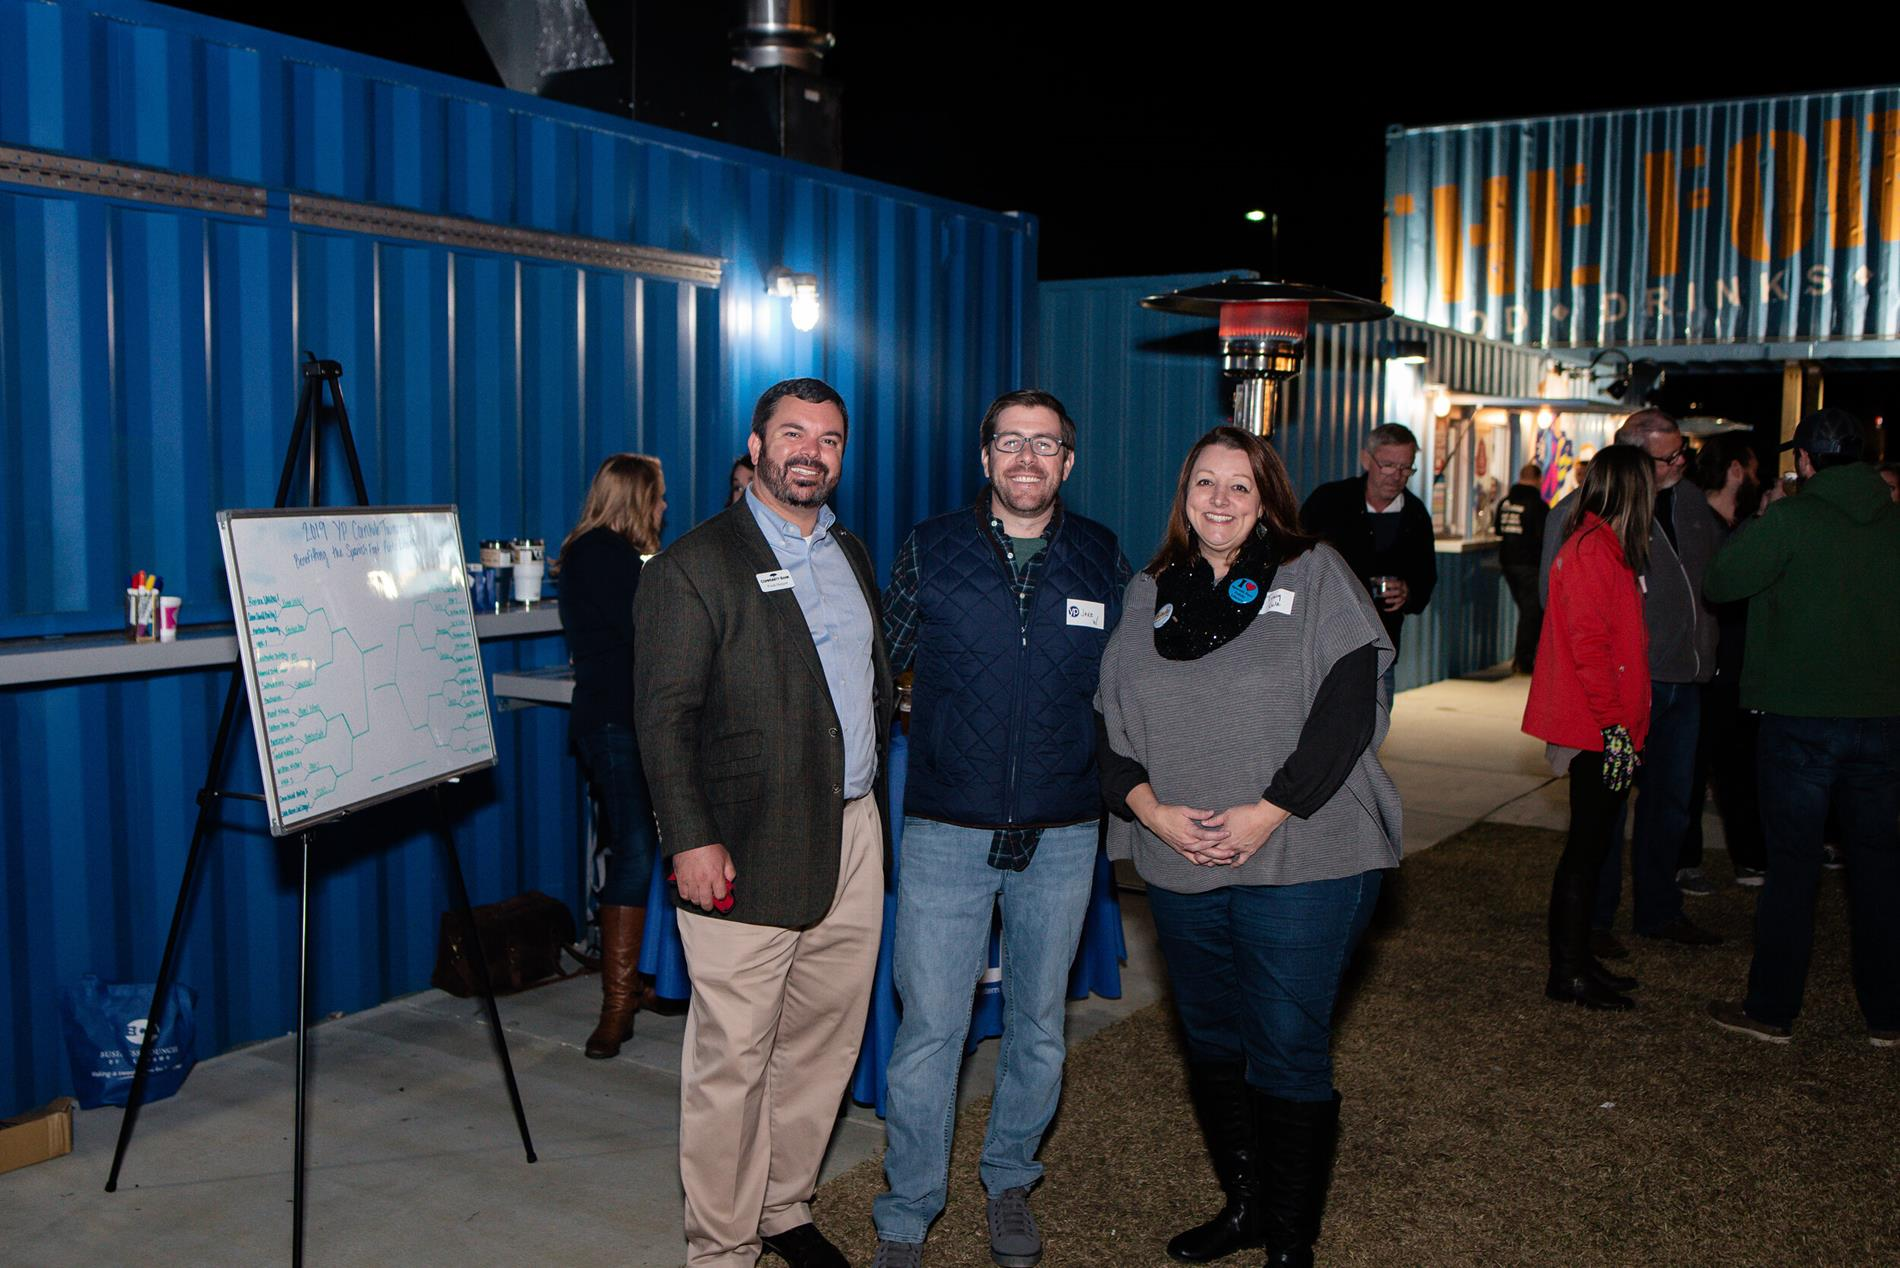 Frank Shepard, Eastern Shore Young Professionals, 3rd Annual ESYP Cornhole tournament participant, and Tracy M. Cole, Director of Spanish Fort Public Library at the 3rd annual Eastern Shore Young Professionals Cornhole Tournament library fundraiser, 11/20/19